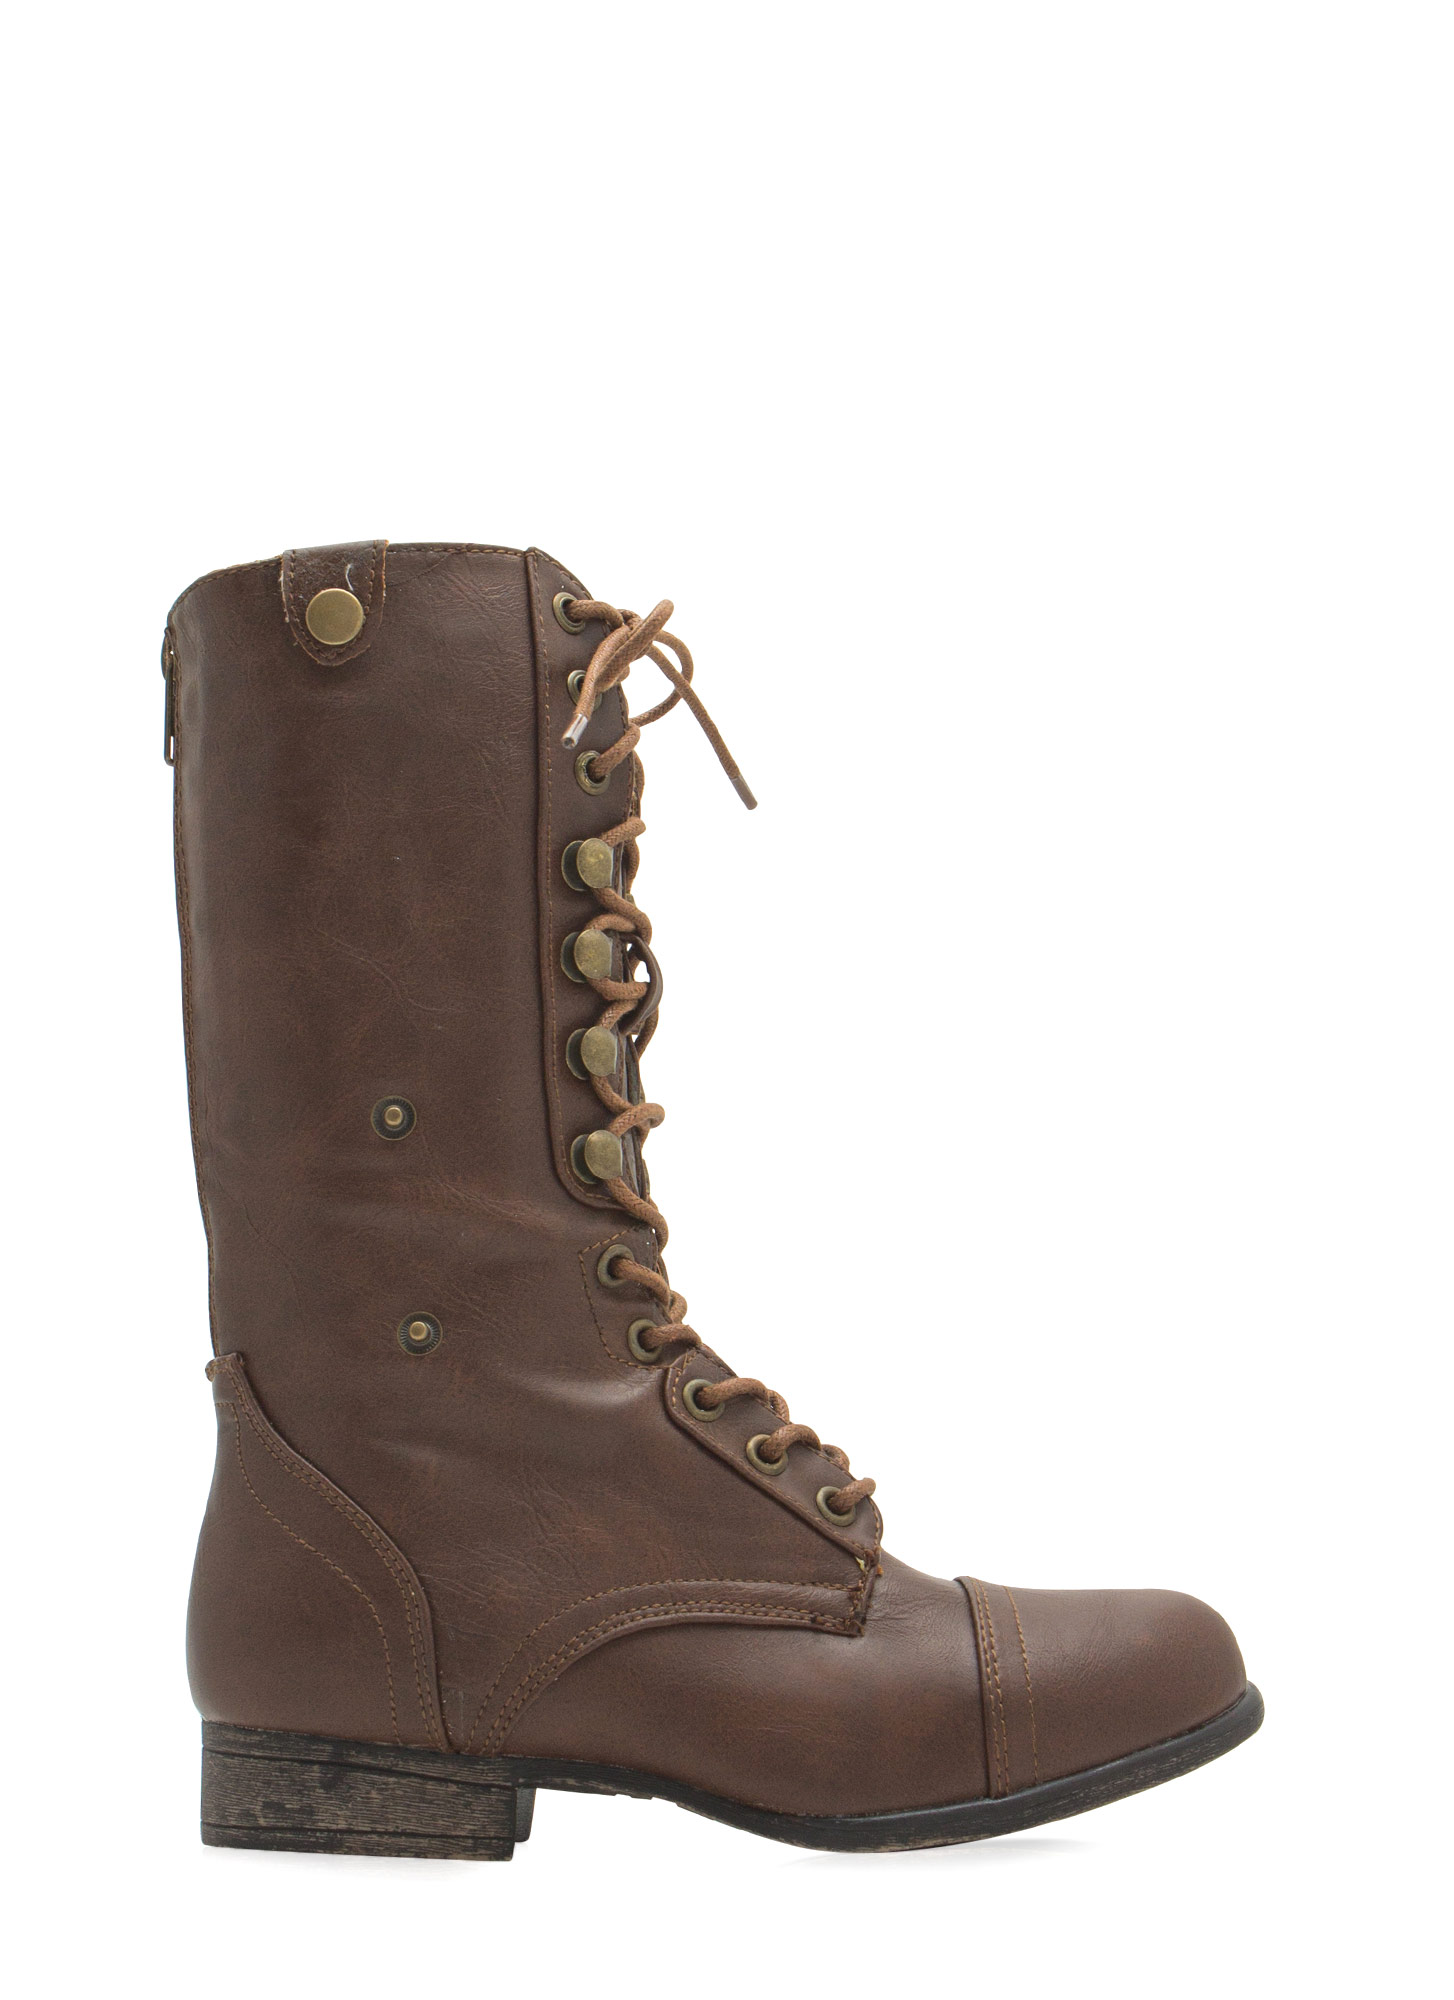 Foldover Lace-Up Combat Boots CHSTNTBEIGE